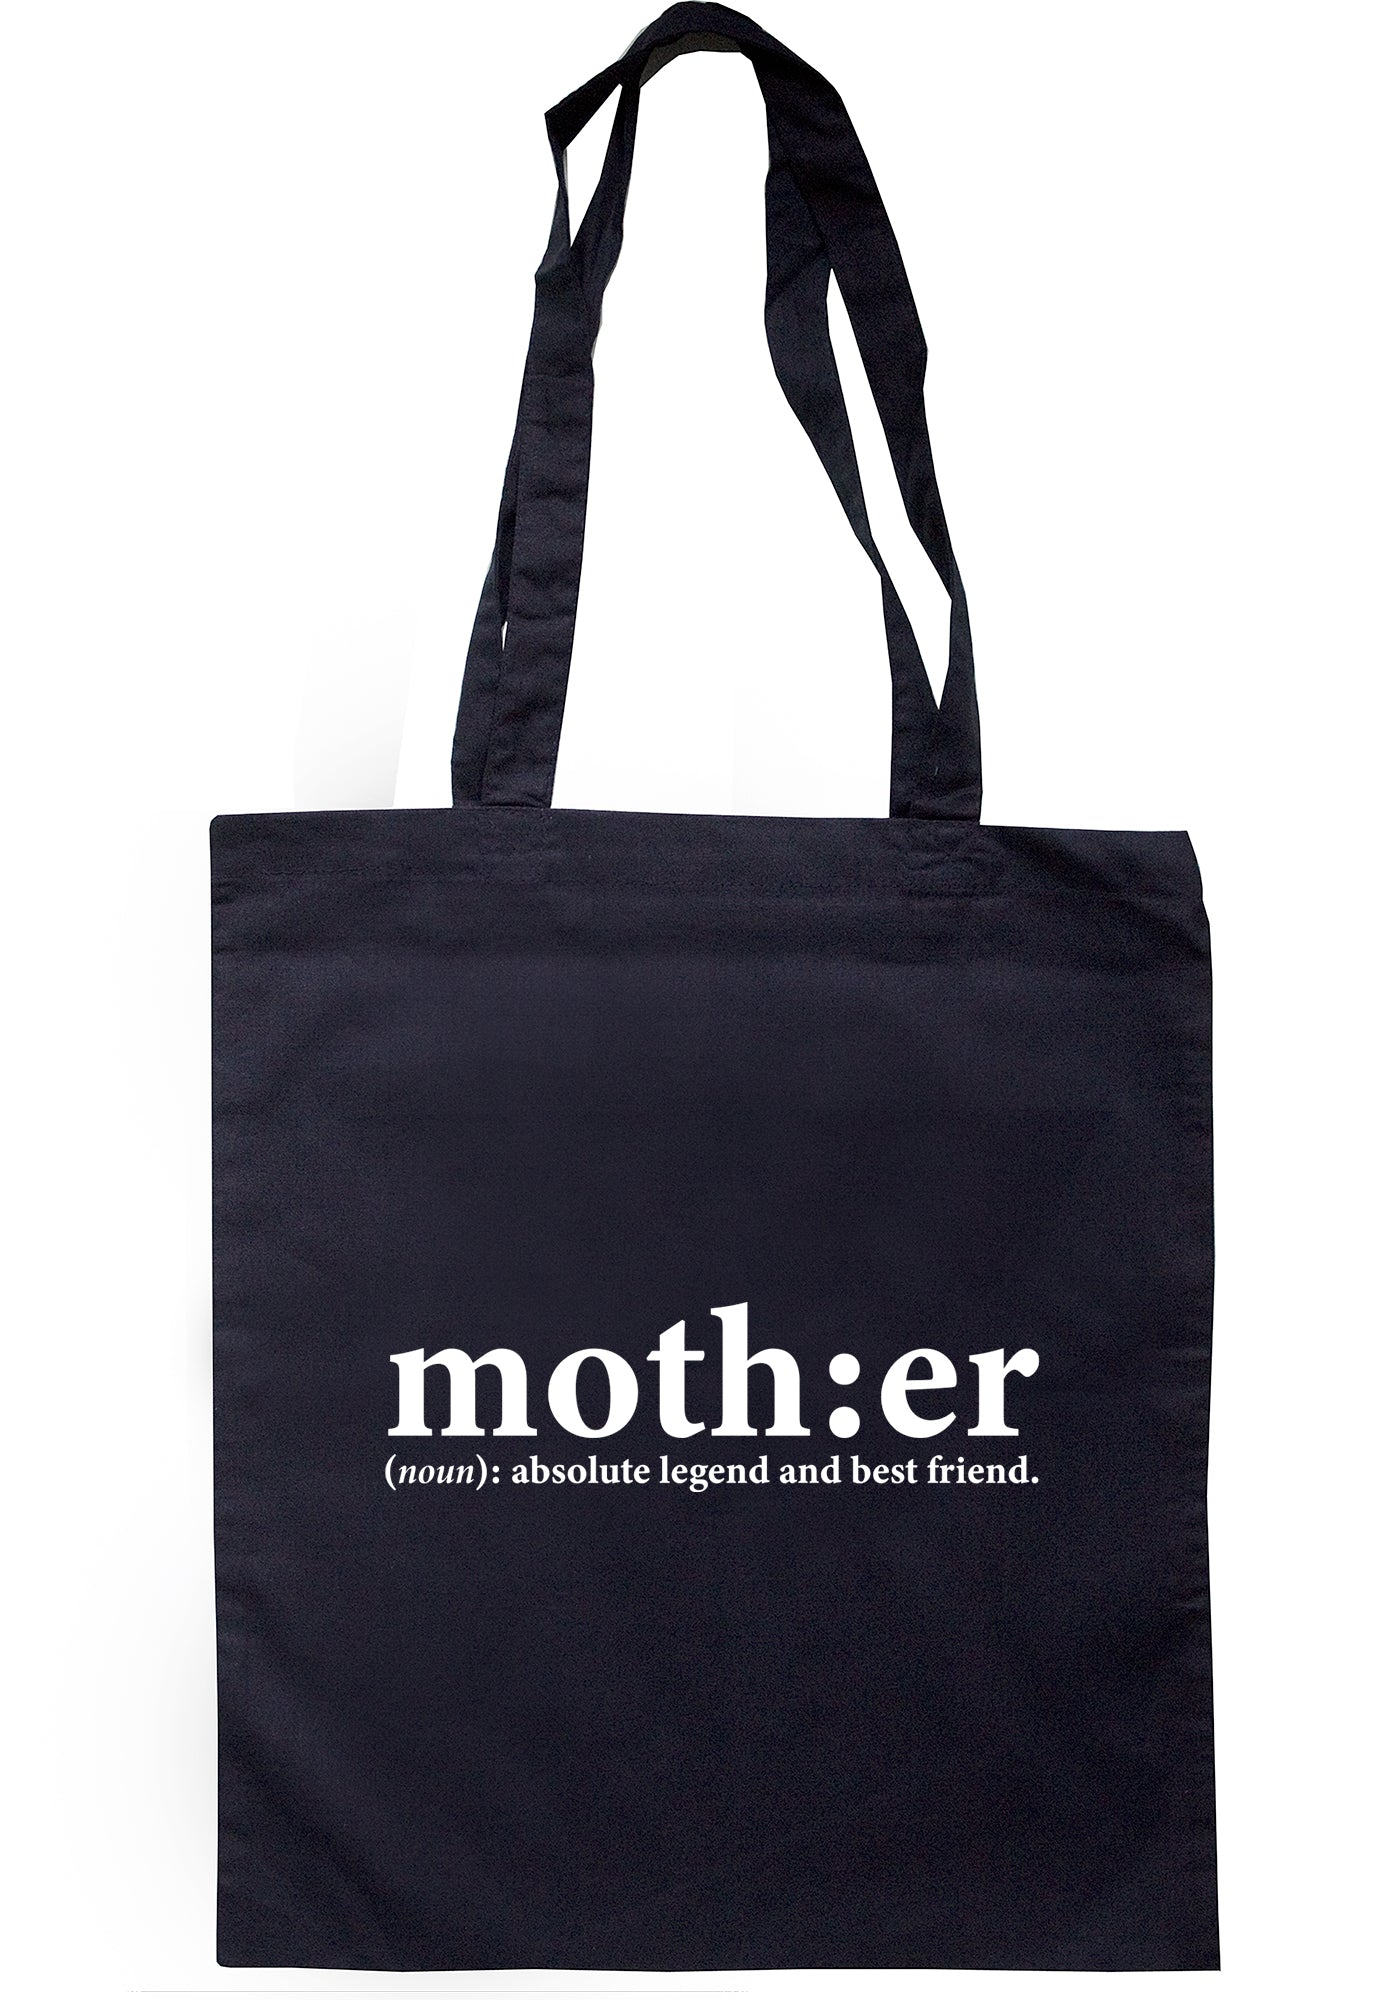 Mother Definition Tote Bag A0087